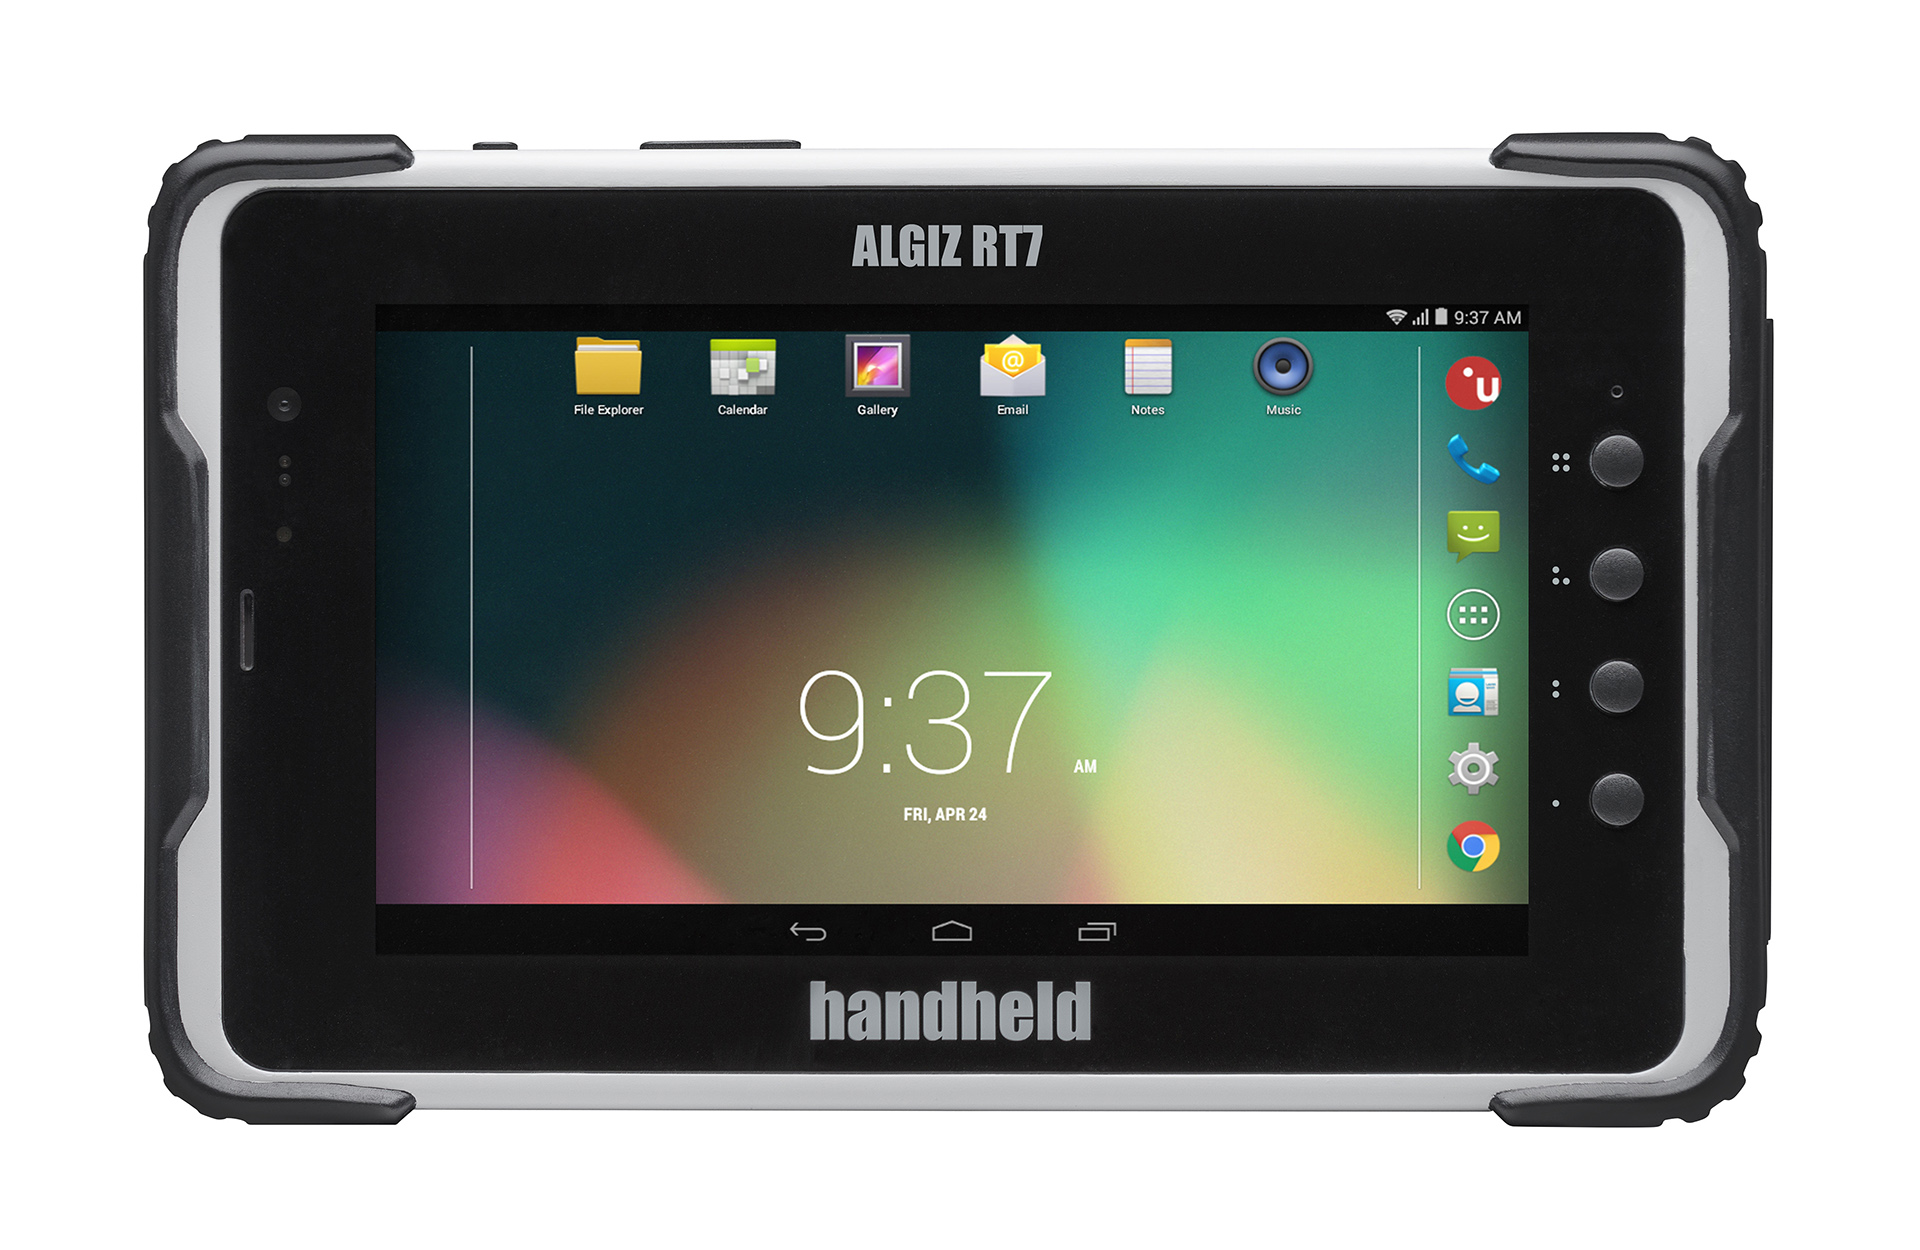 Algiz-RT7-rugged-tablet-pc-front.jpg